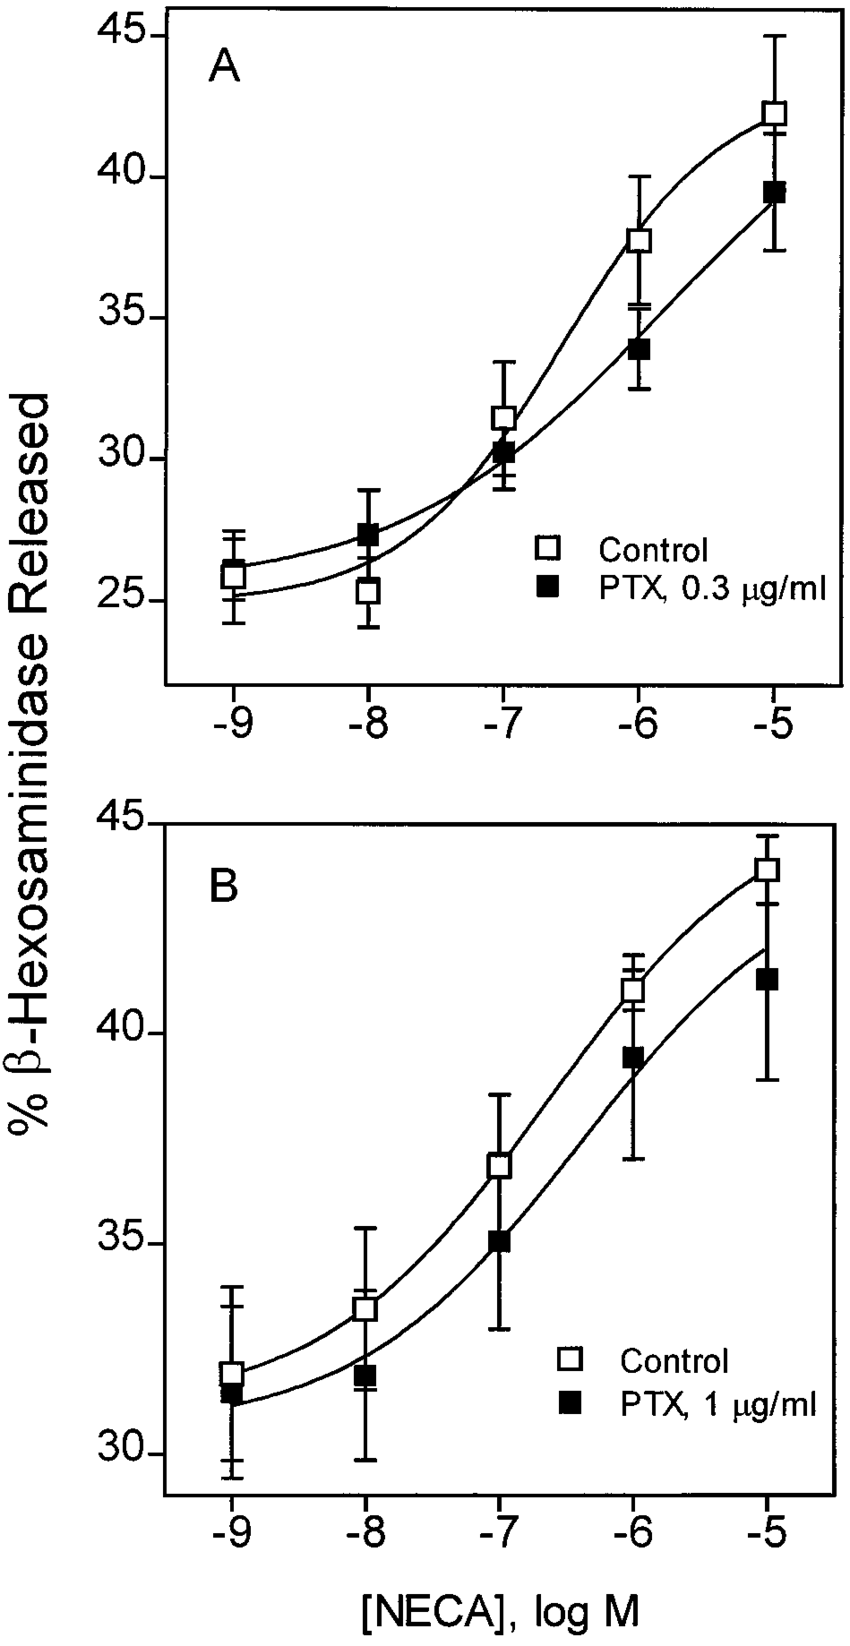 hight resolution of effect of pretreatment of br cells with pertussis toxin ptx on neca stimulated degranulation cells were pretreated for 24 hr with 0 3 g ml a or 1 g ml